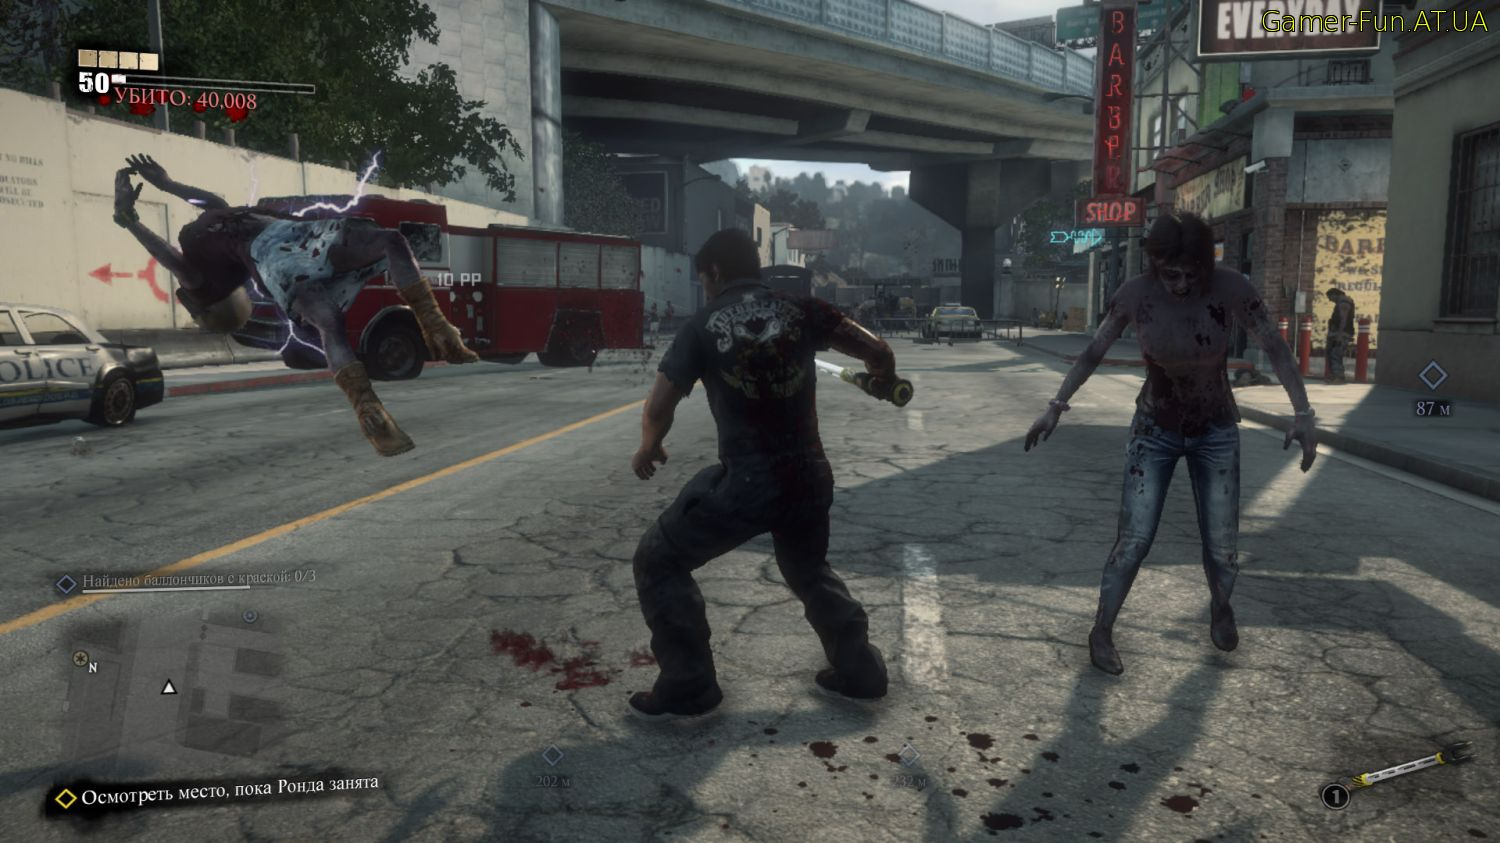 Dead Rising 3 - Apocalypse Edition [Update 5] (2014) Русская версия [RePack], скриншоты Dead Rising 3 - Apocalypse Edition [Update 5] (2014) Русская версия [RePack], скачать Dead Rising 3 - Apocalypse Edition [Update 5] (2014) Русская версия [RePack], картинки Dead Rising 3 - Apocalypse Edition [Update 5] (2014) Русская версия [RePack], постер Dead Rising 3 - Apocalypse Edition [Update 5] (2014) Русская версия [RePack]